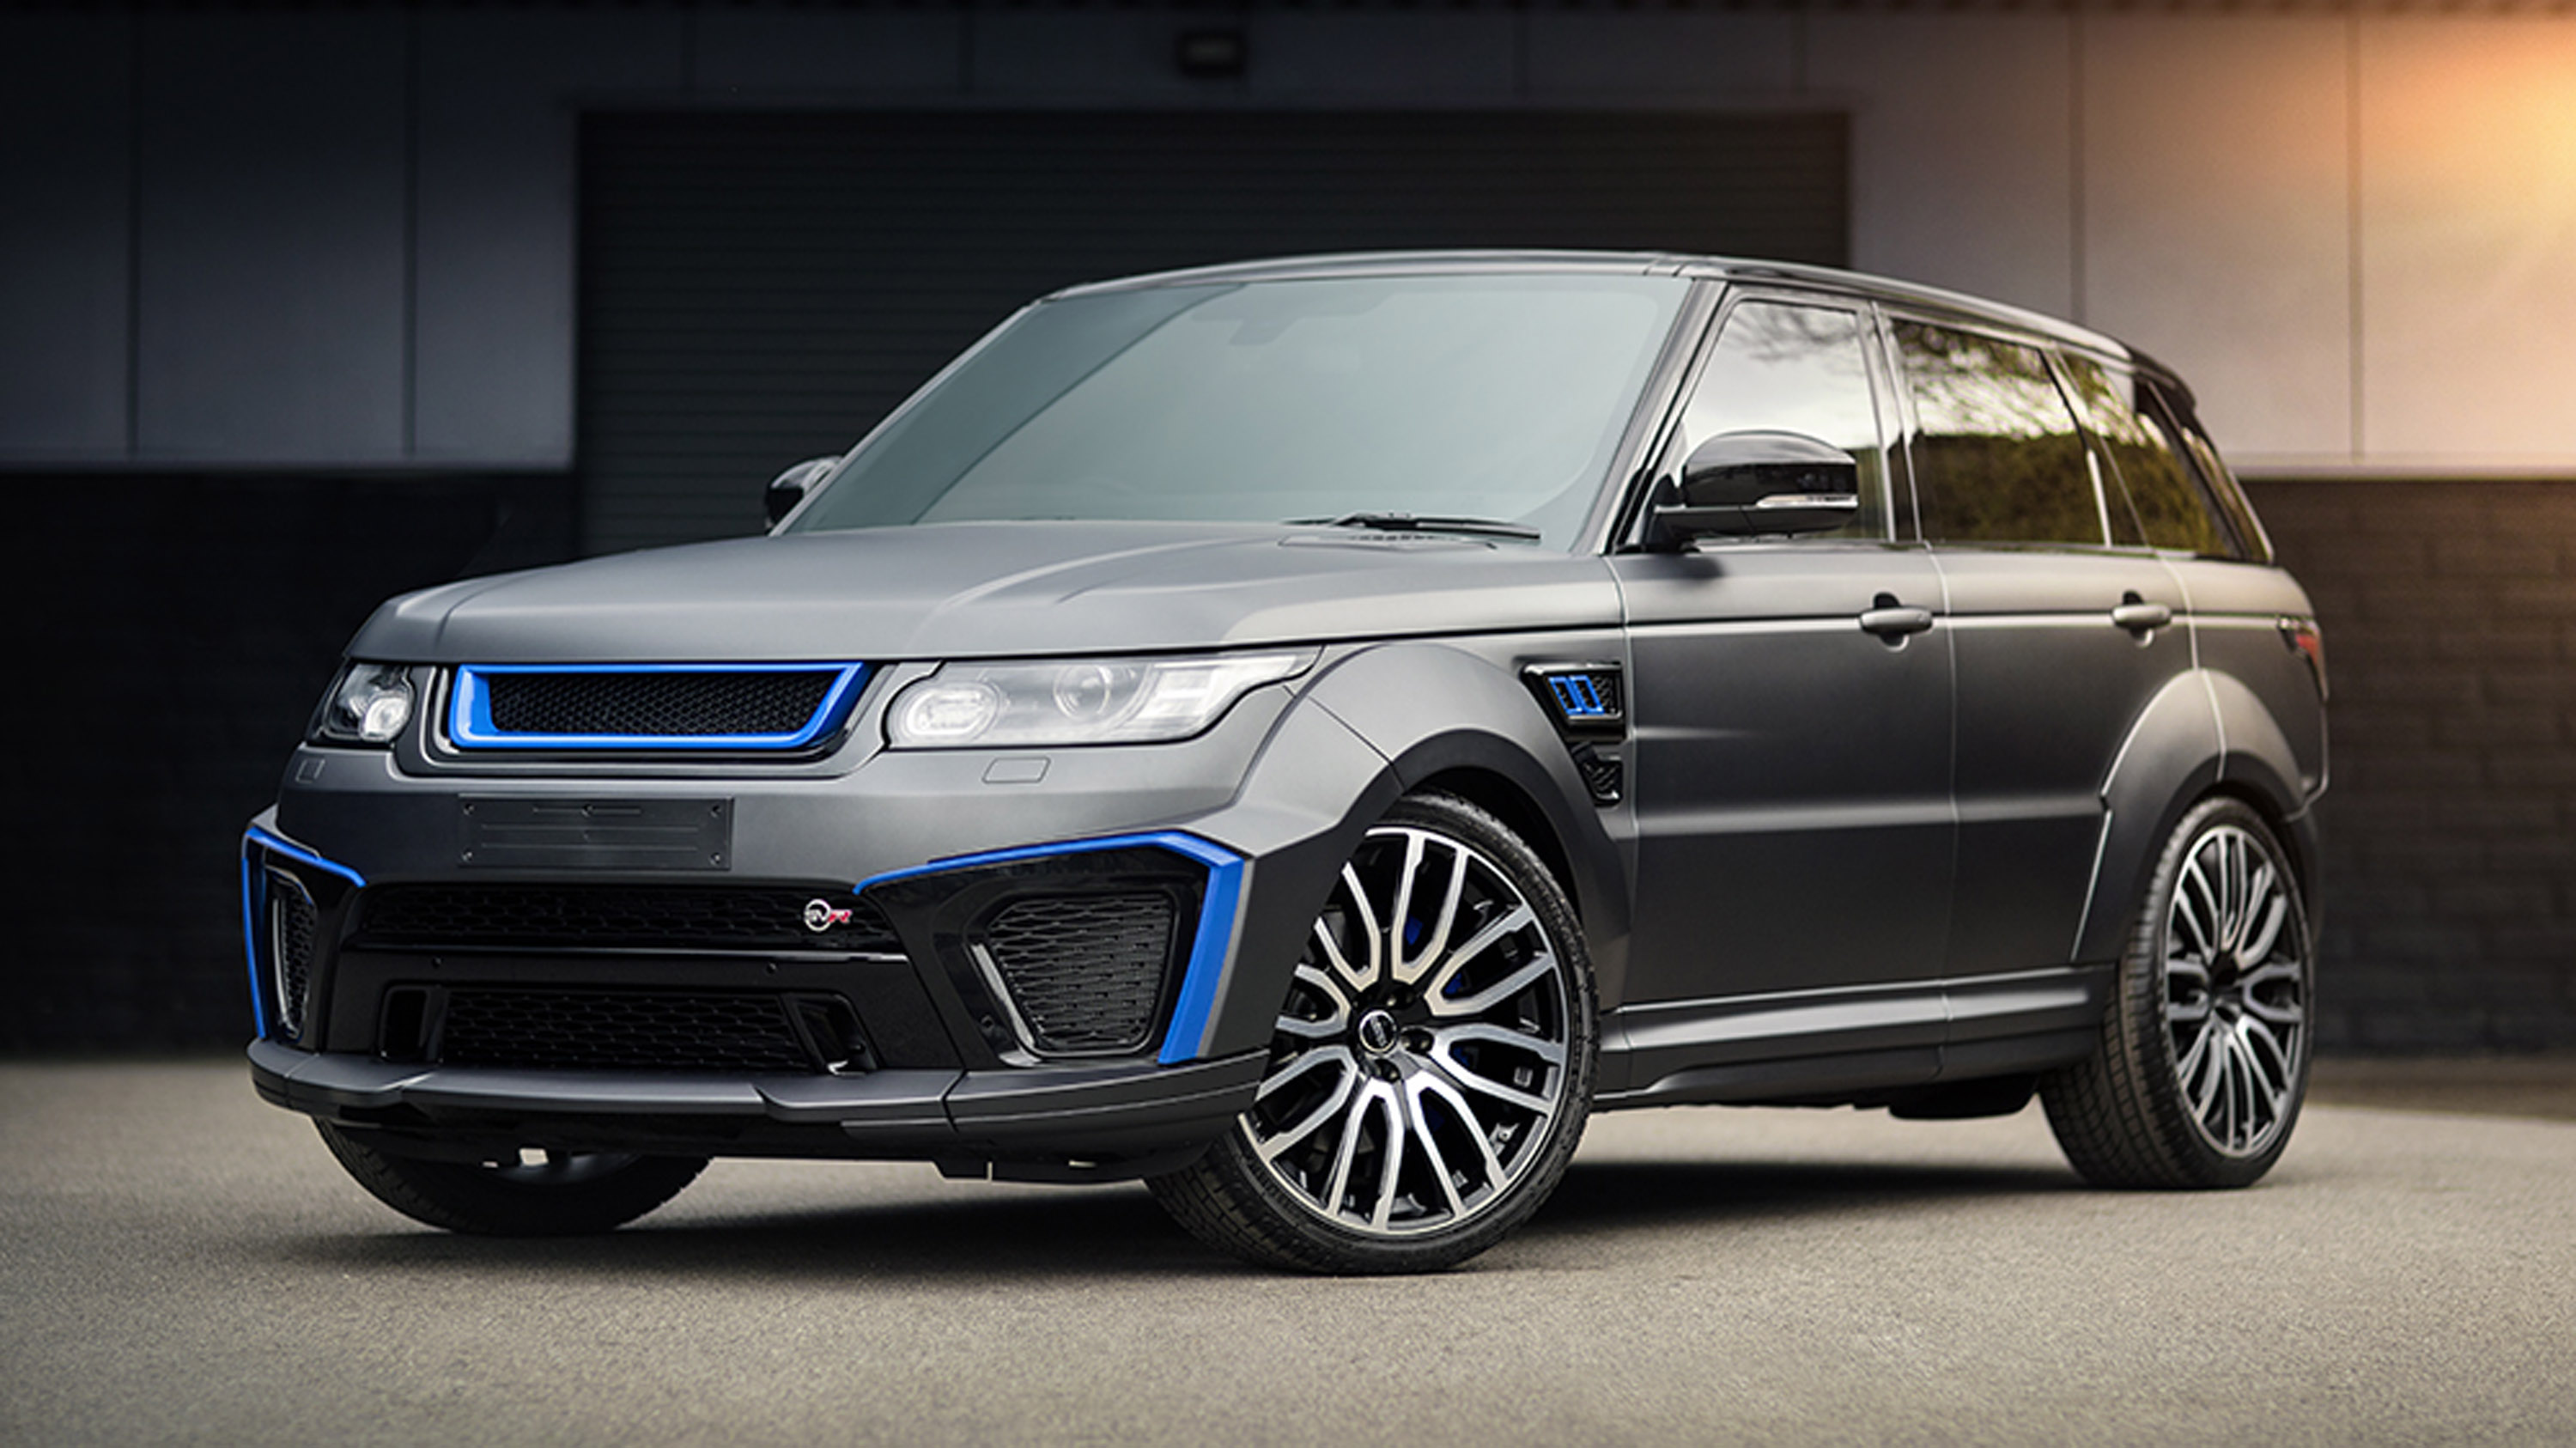 2017 kahn design land rover range rover sport svr. Black Bedroom Furniture Sets. Home Design Ideas